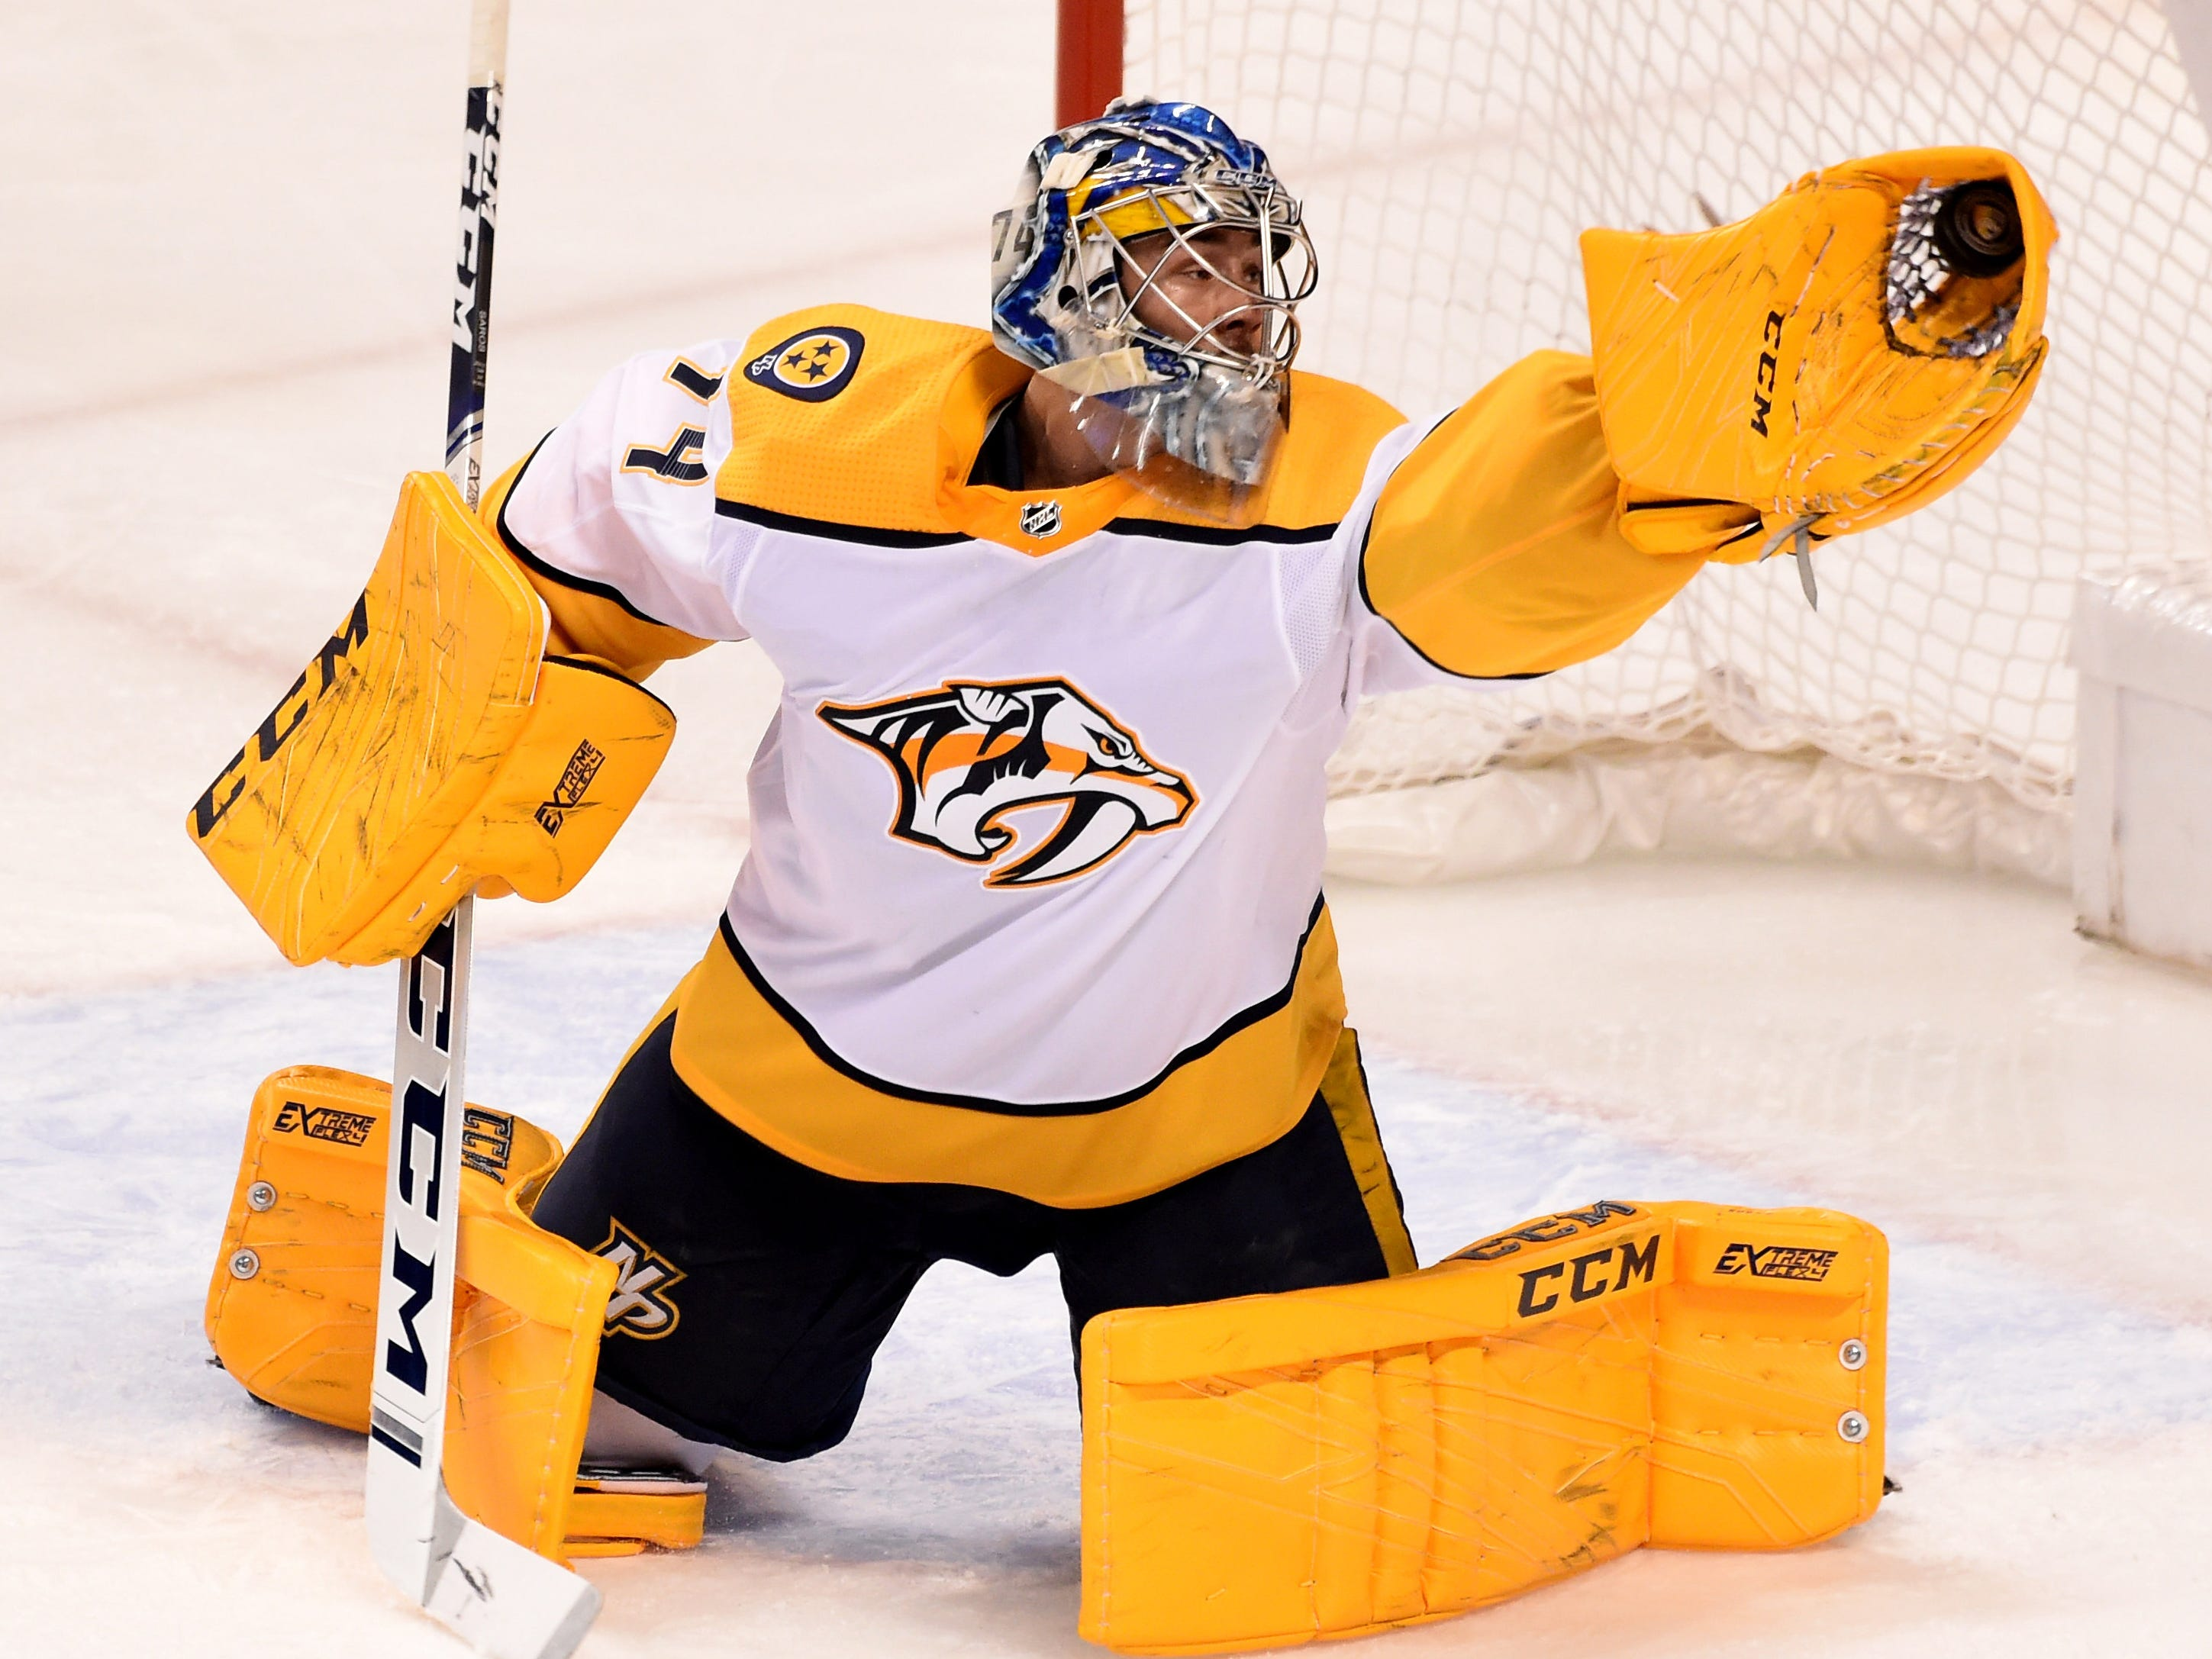 Feb 1, 2019: Predators 4, Panthers 1 -- Nashville Predators goaltender Juuse Saros (74) makes a save against the Florida Panthers during the second period at BB&T Center.